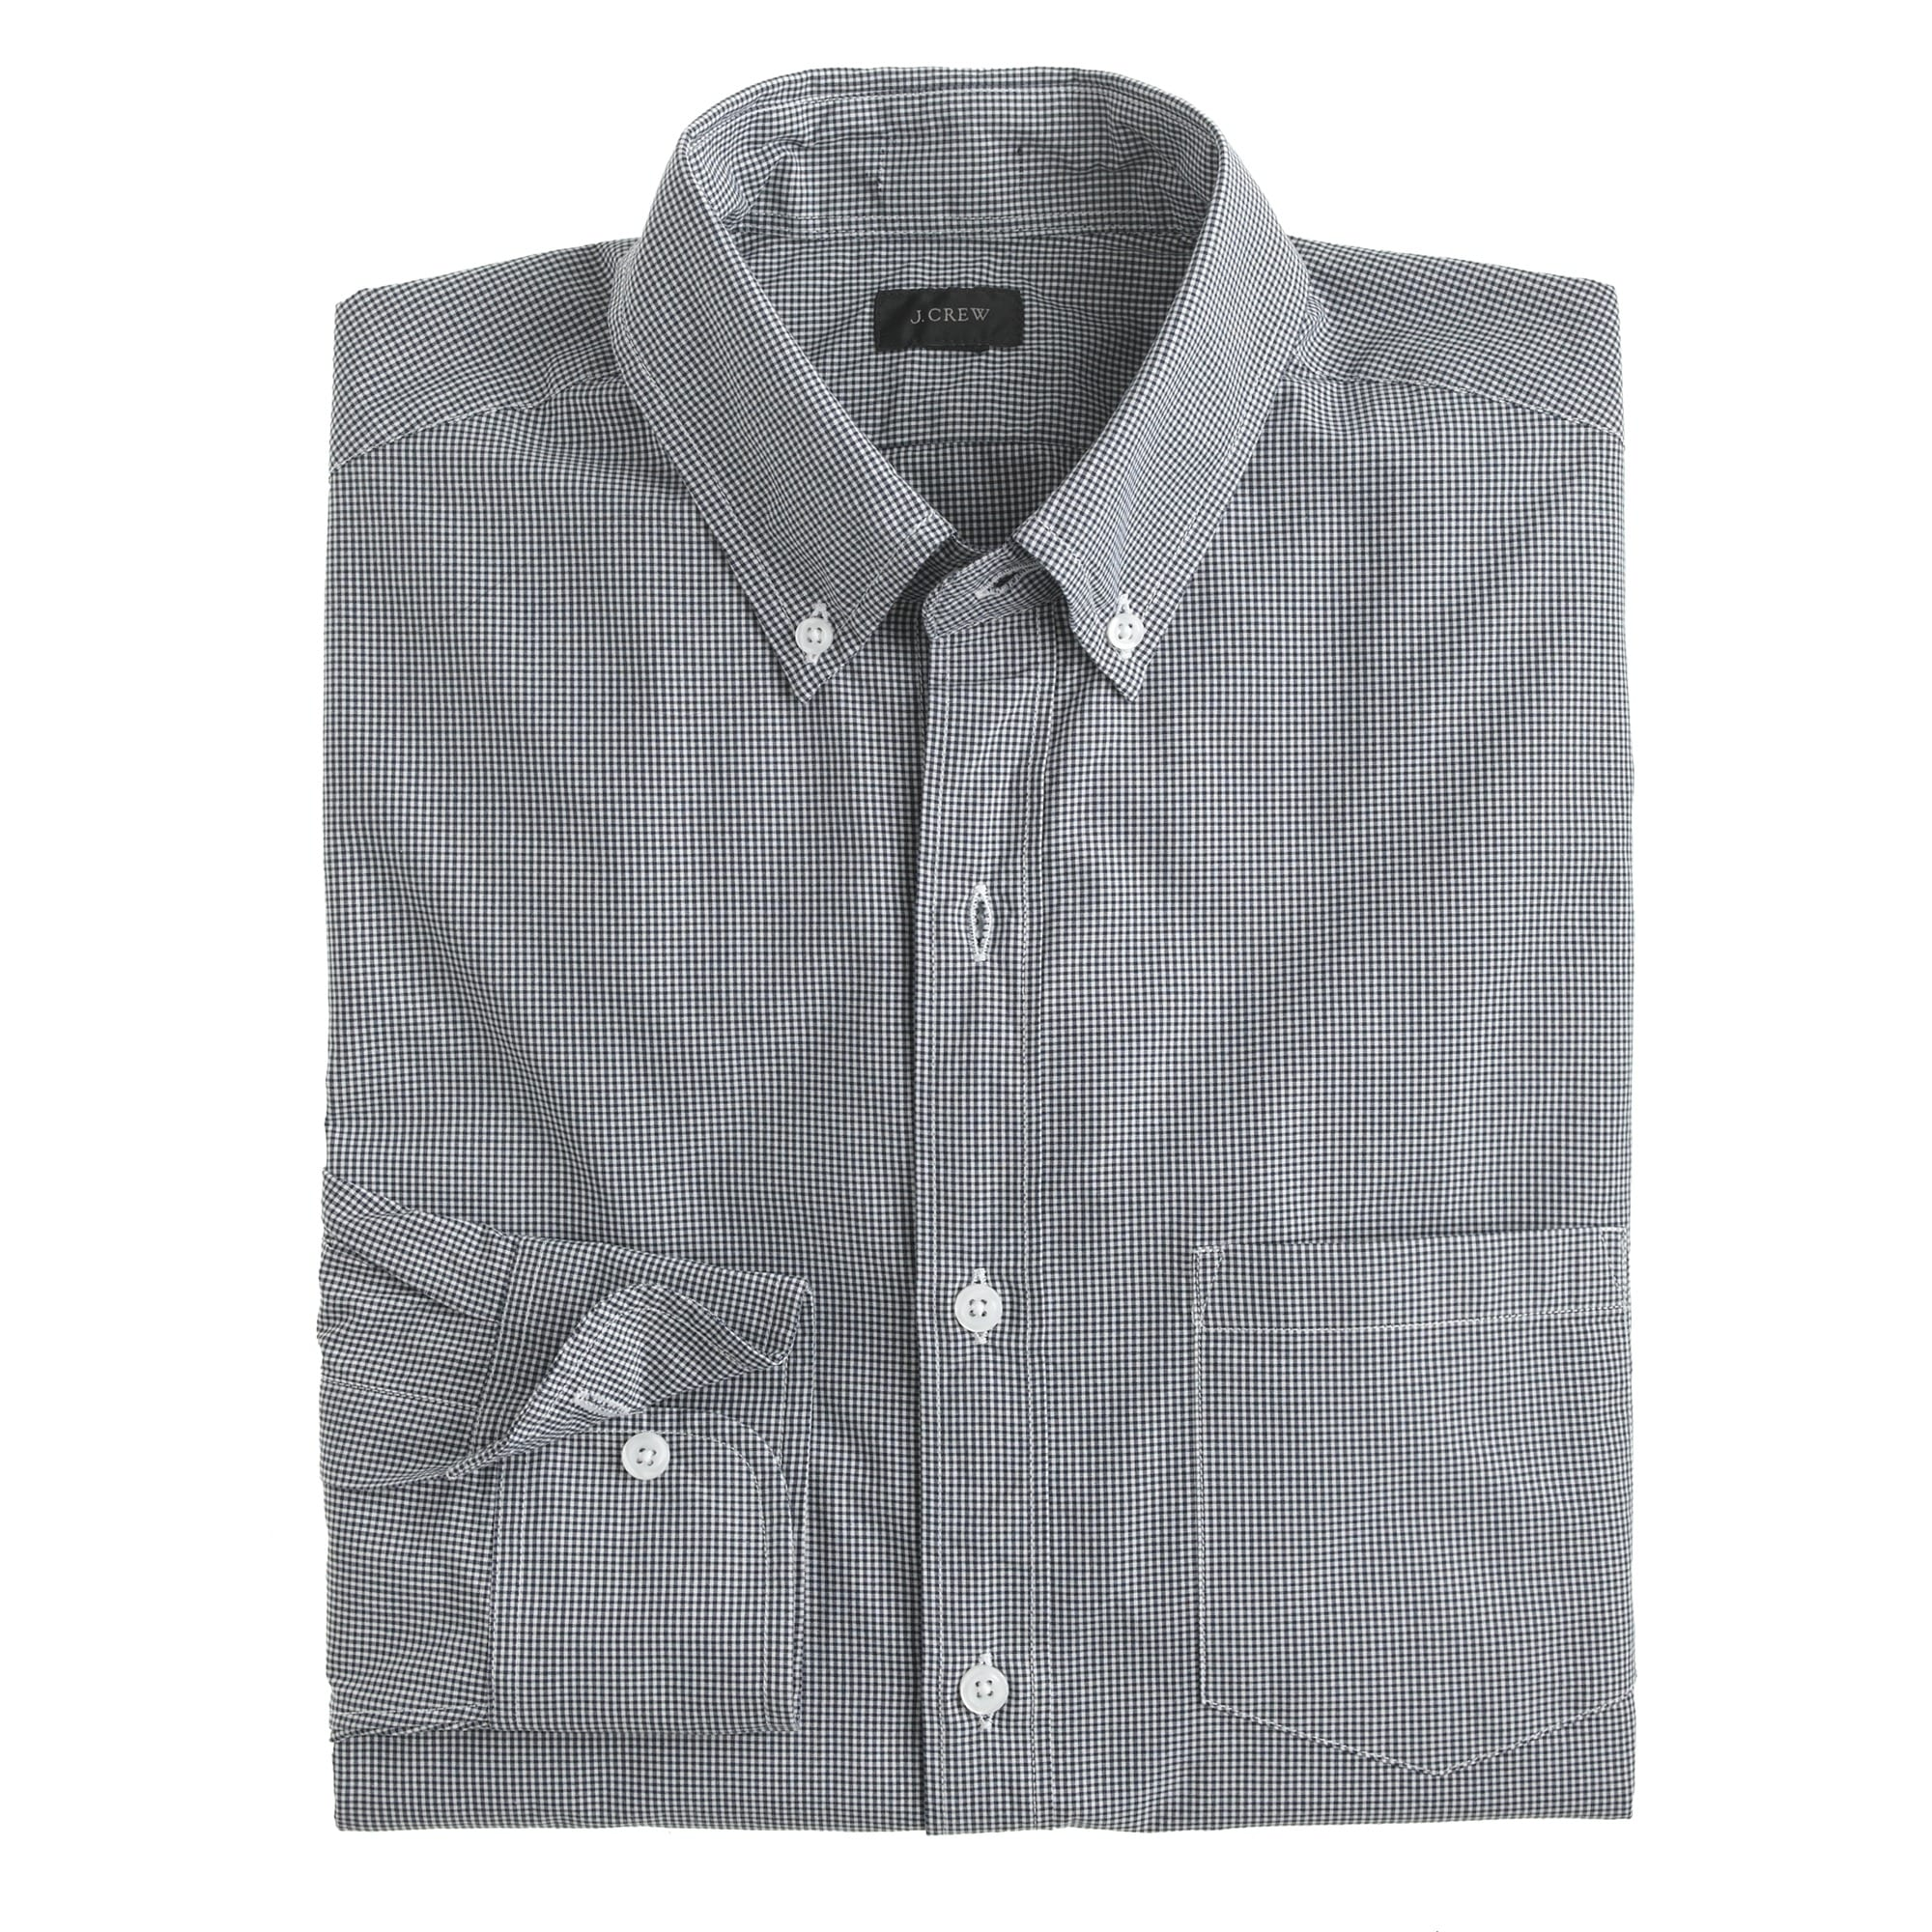 Image 1 for Slim Secret Wash shirt in gingham